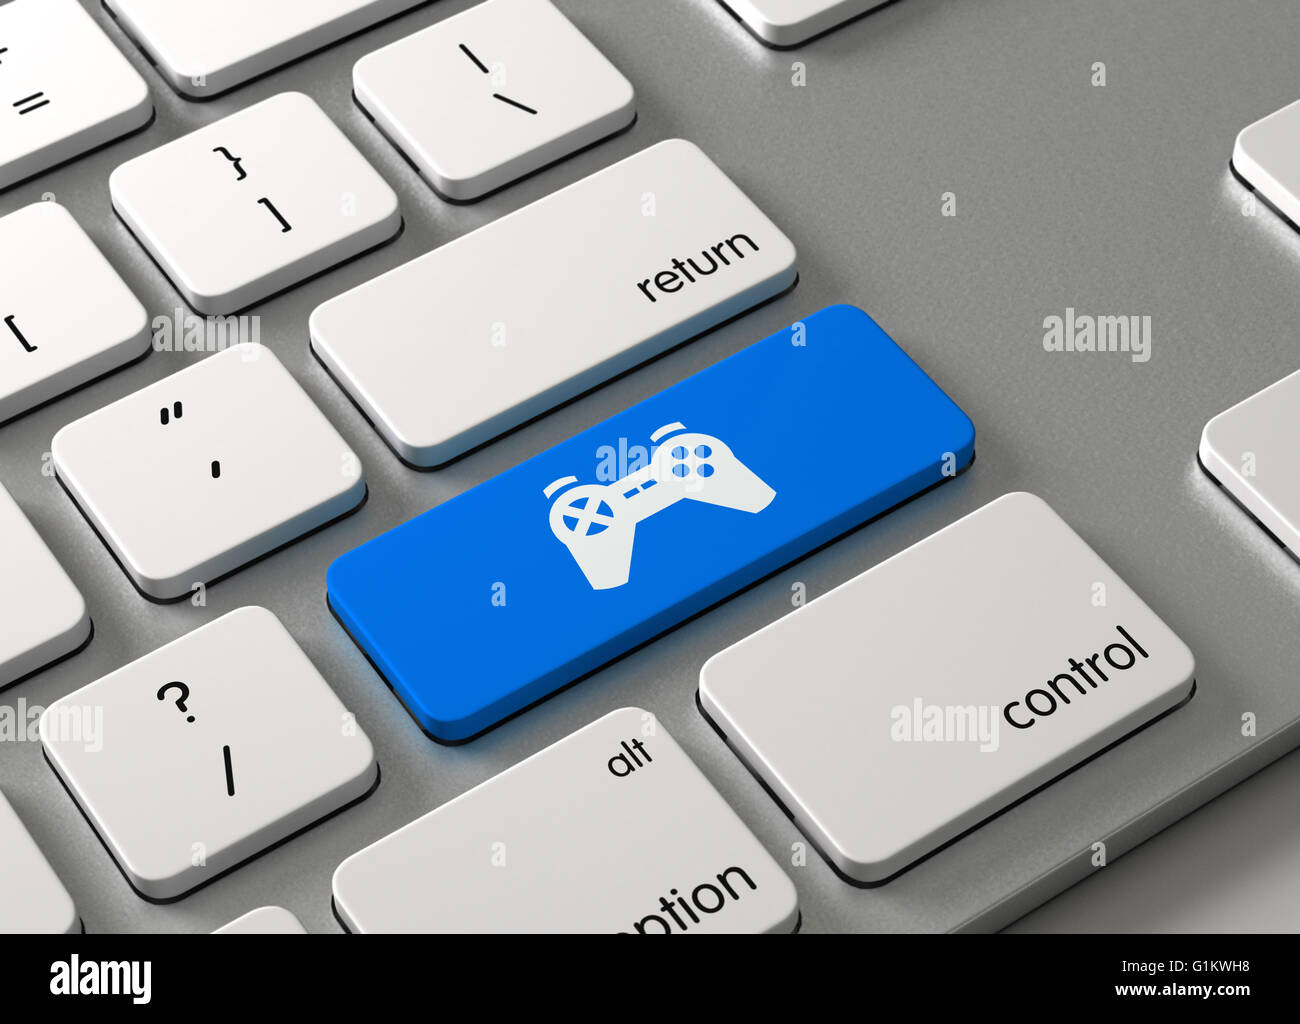 A keyboard with a blue button Joystick - Stock Image